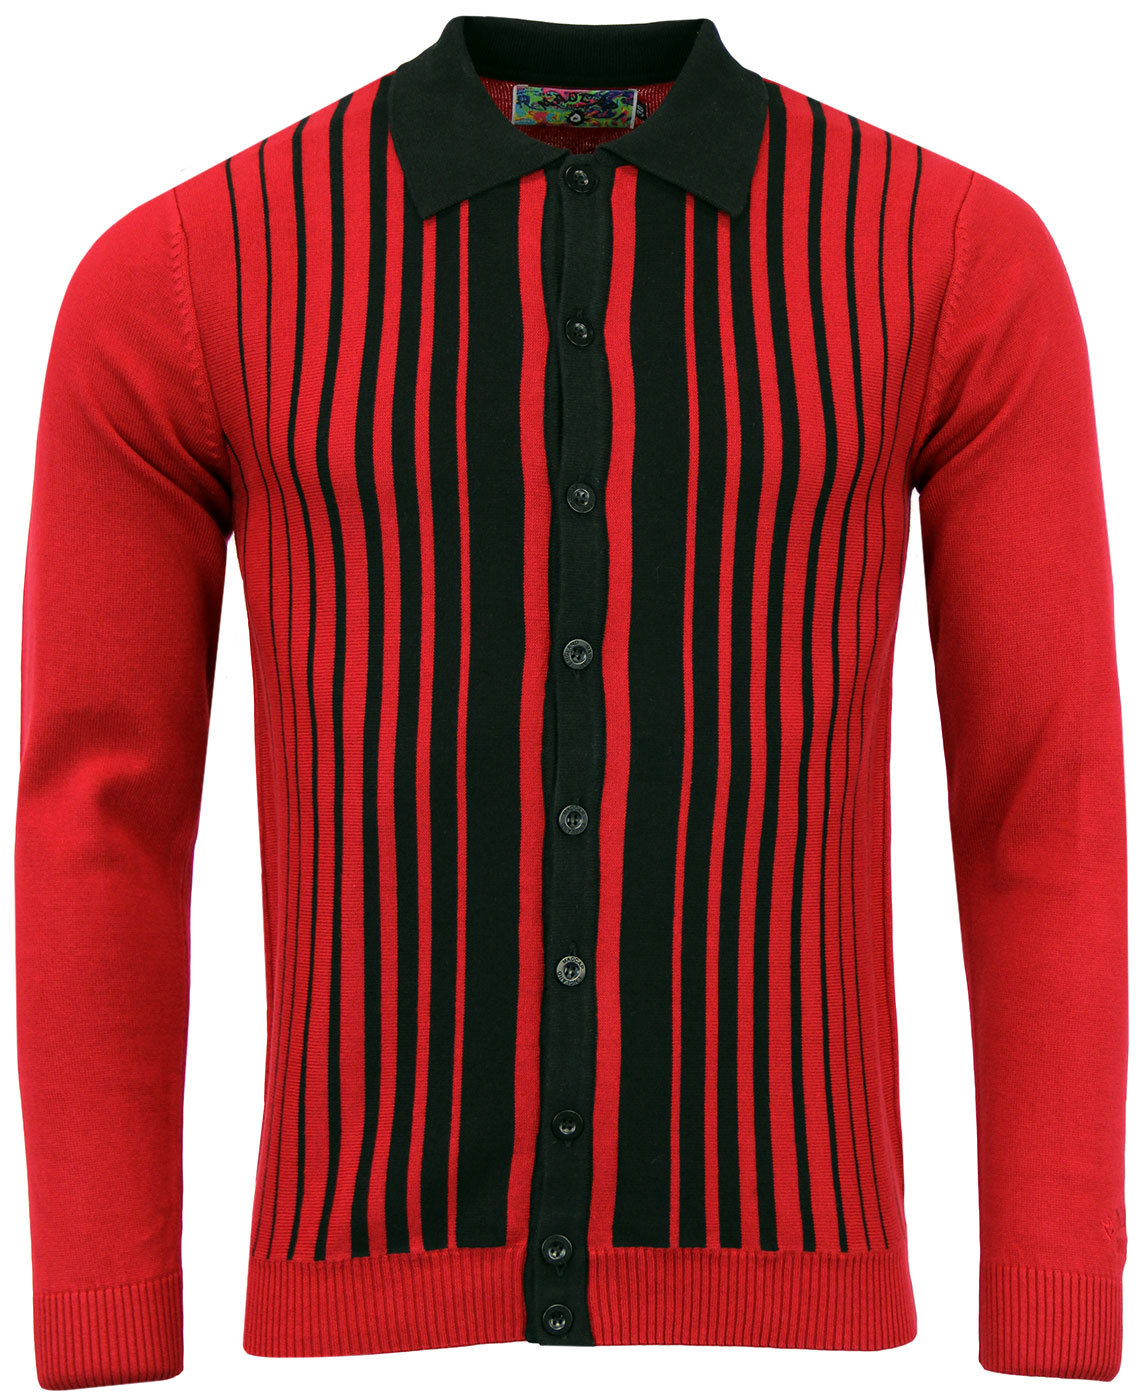 madcap england everly 1960s mod polo cardigan red